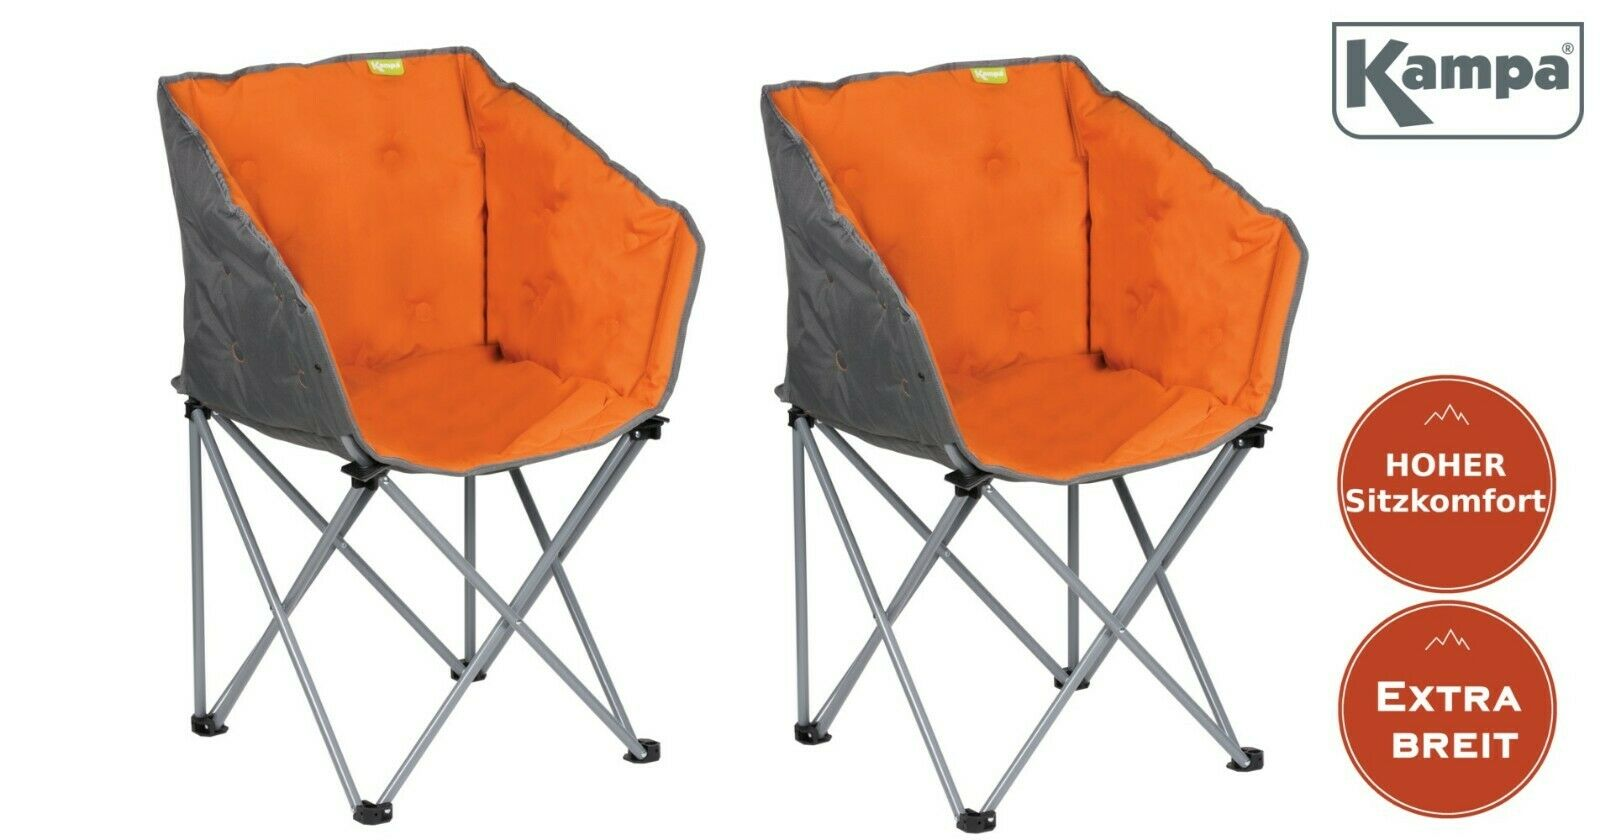 2 x Design Lounge-Sessel komplett gepolstert Campingstuhl Campingsessel Orange